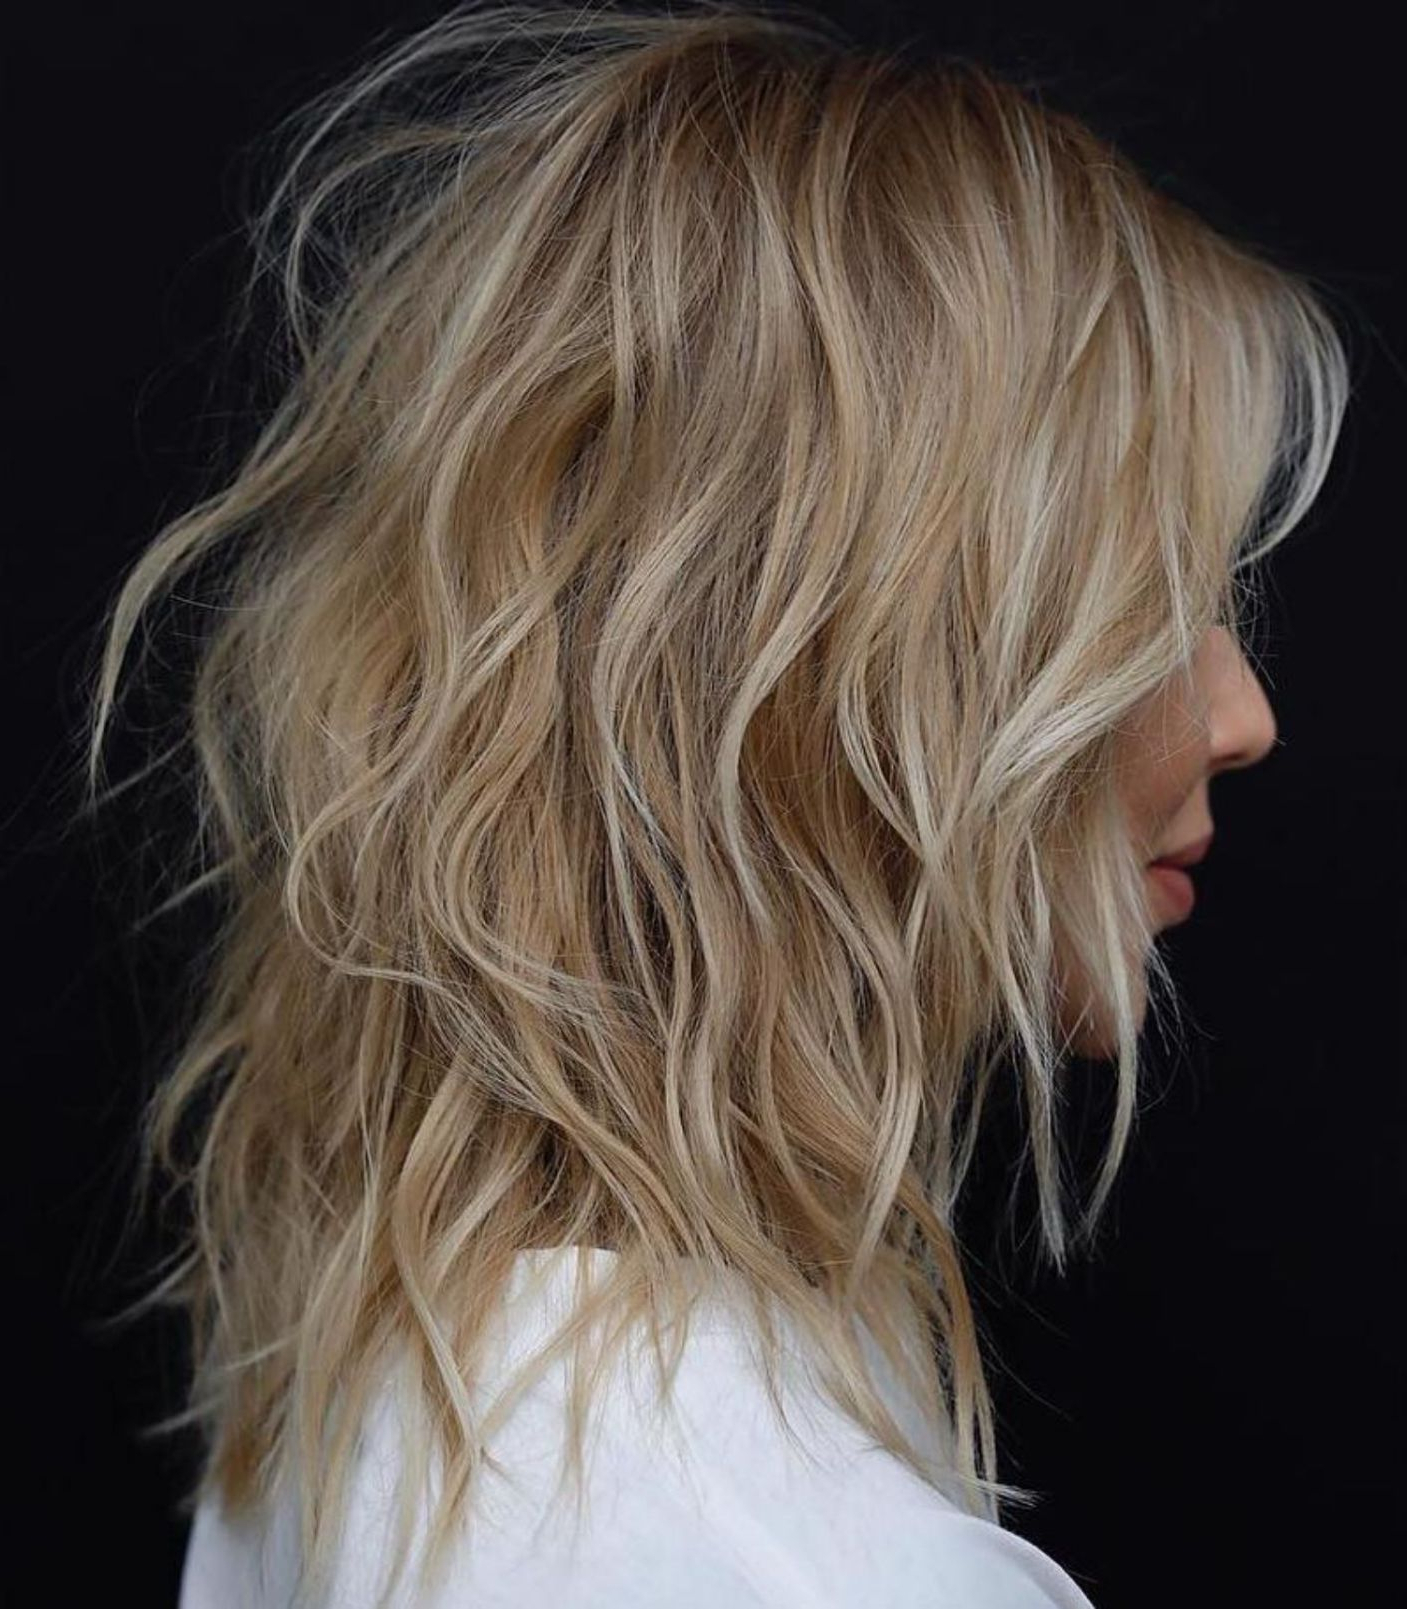 Most Popular Longer Tousled Caramel Blonde Shag Haircuts For 60 Best Variations Of A Medium Shag Haircut For Your (View 3 of 20)